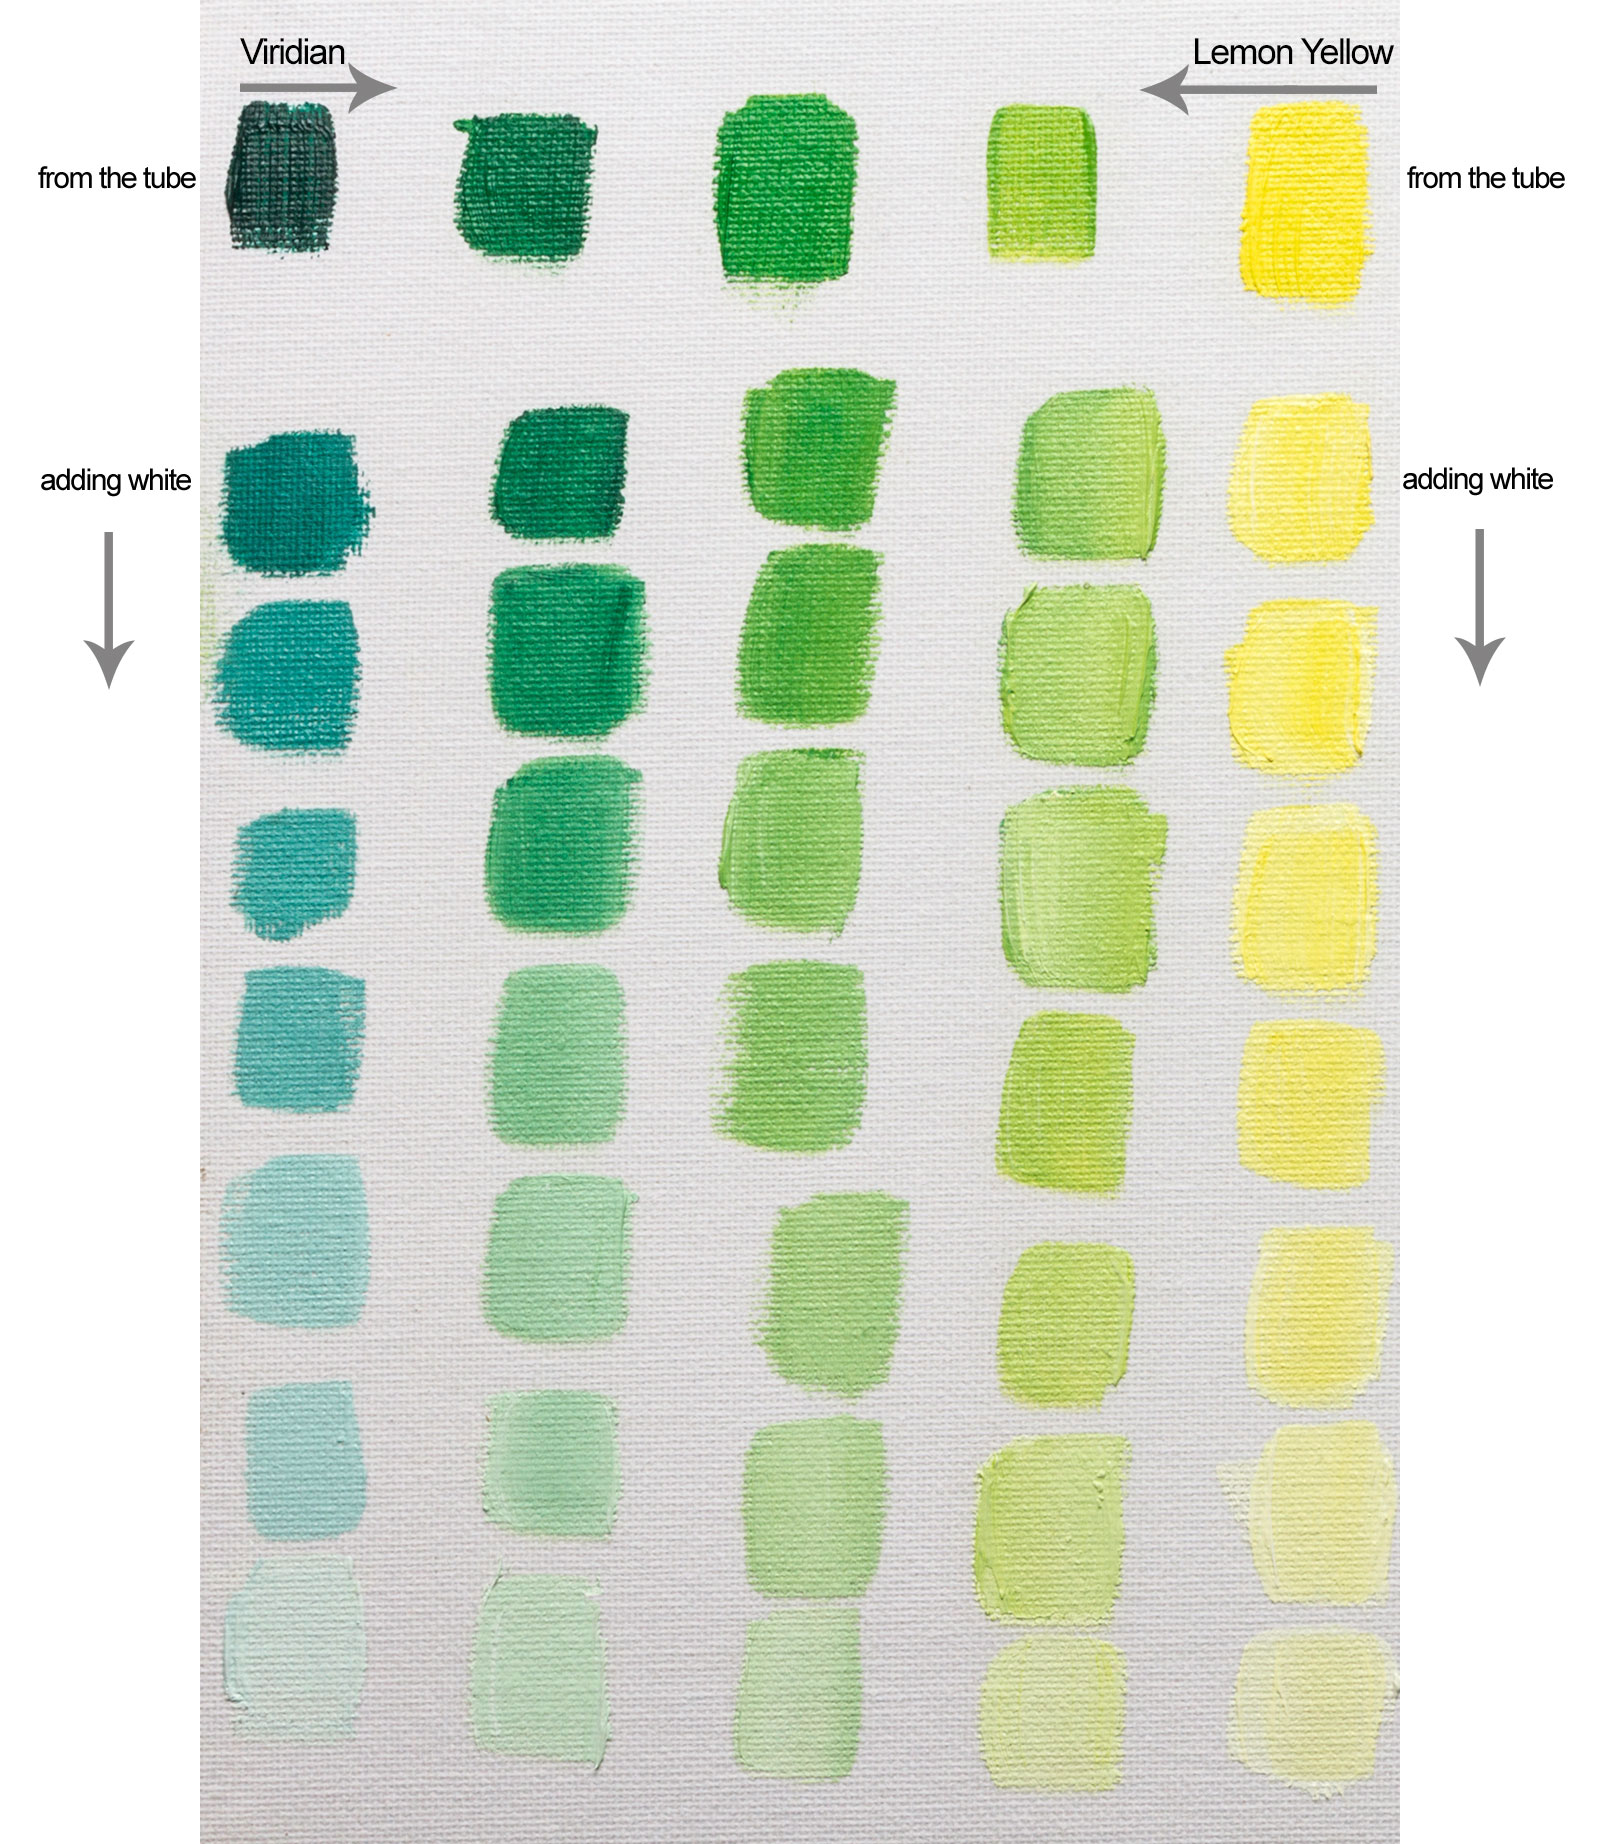 Colour mixing with williamsburg viridian oil paint jacksons art williamsburg viridian lemon yellow nvjuhfo Image collections